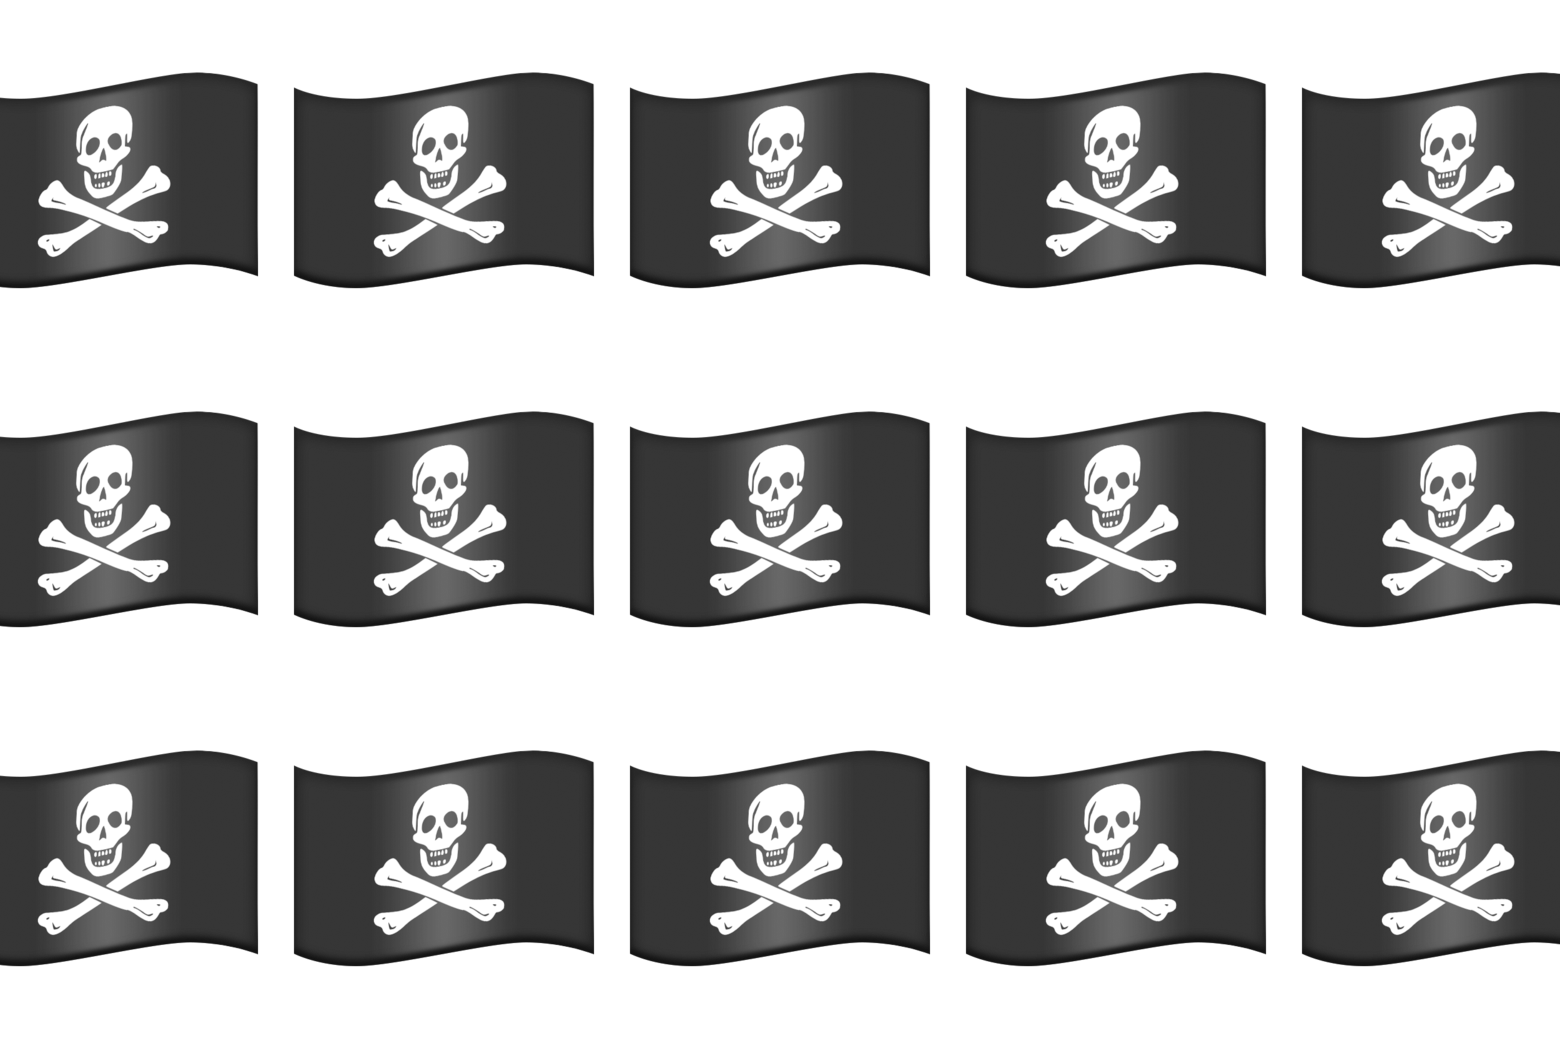 Pirate flag emojis.